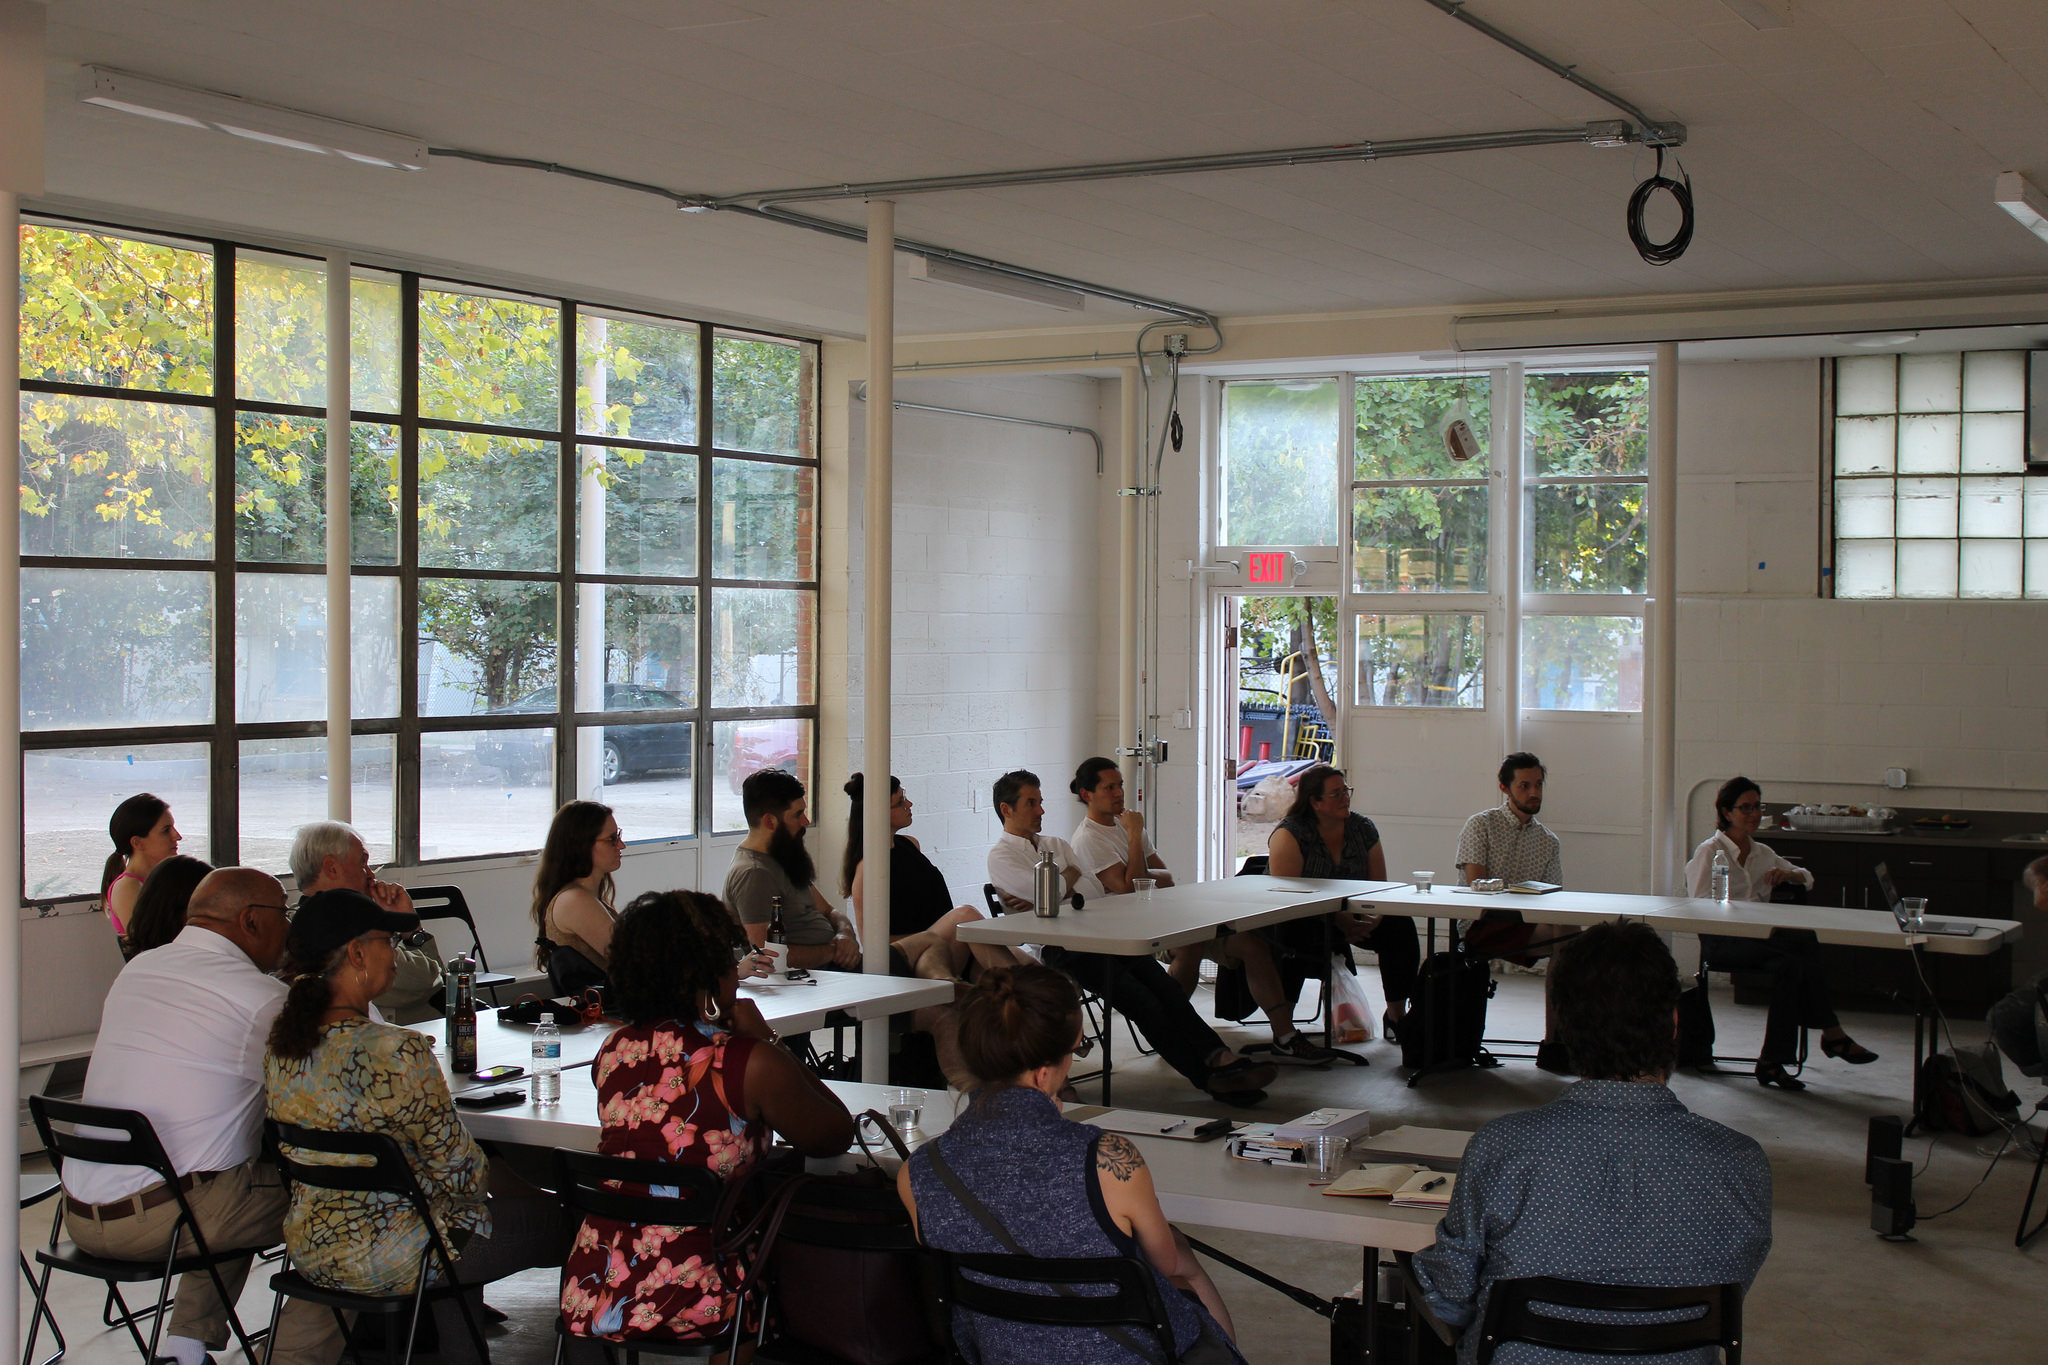 A Color Removed : Letter Writing Workshop at the FRONT Porch.Image courtesy of SPACES.